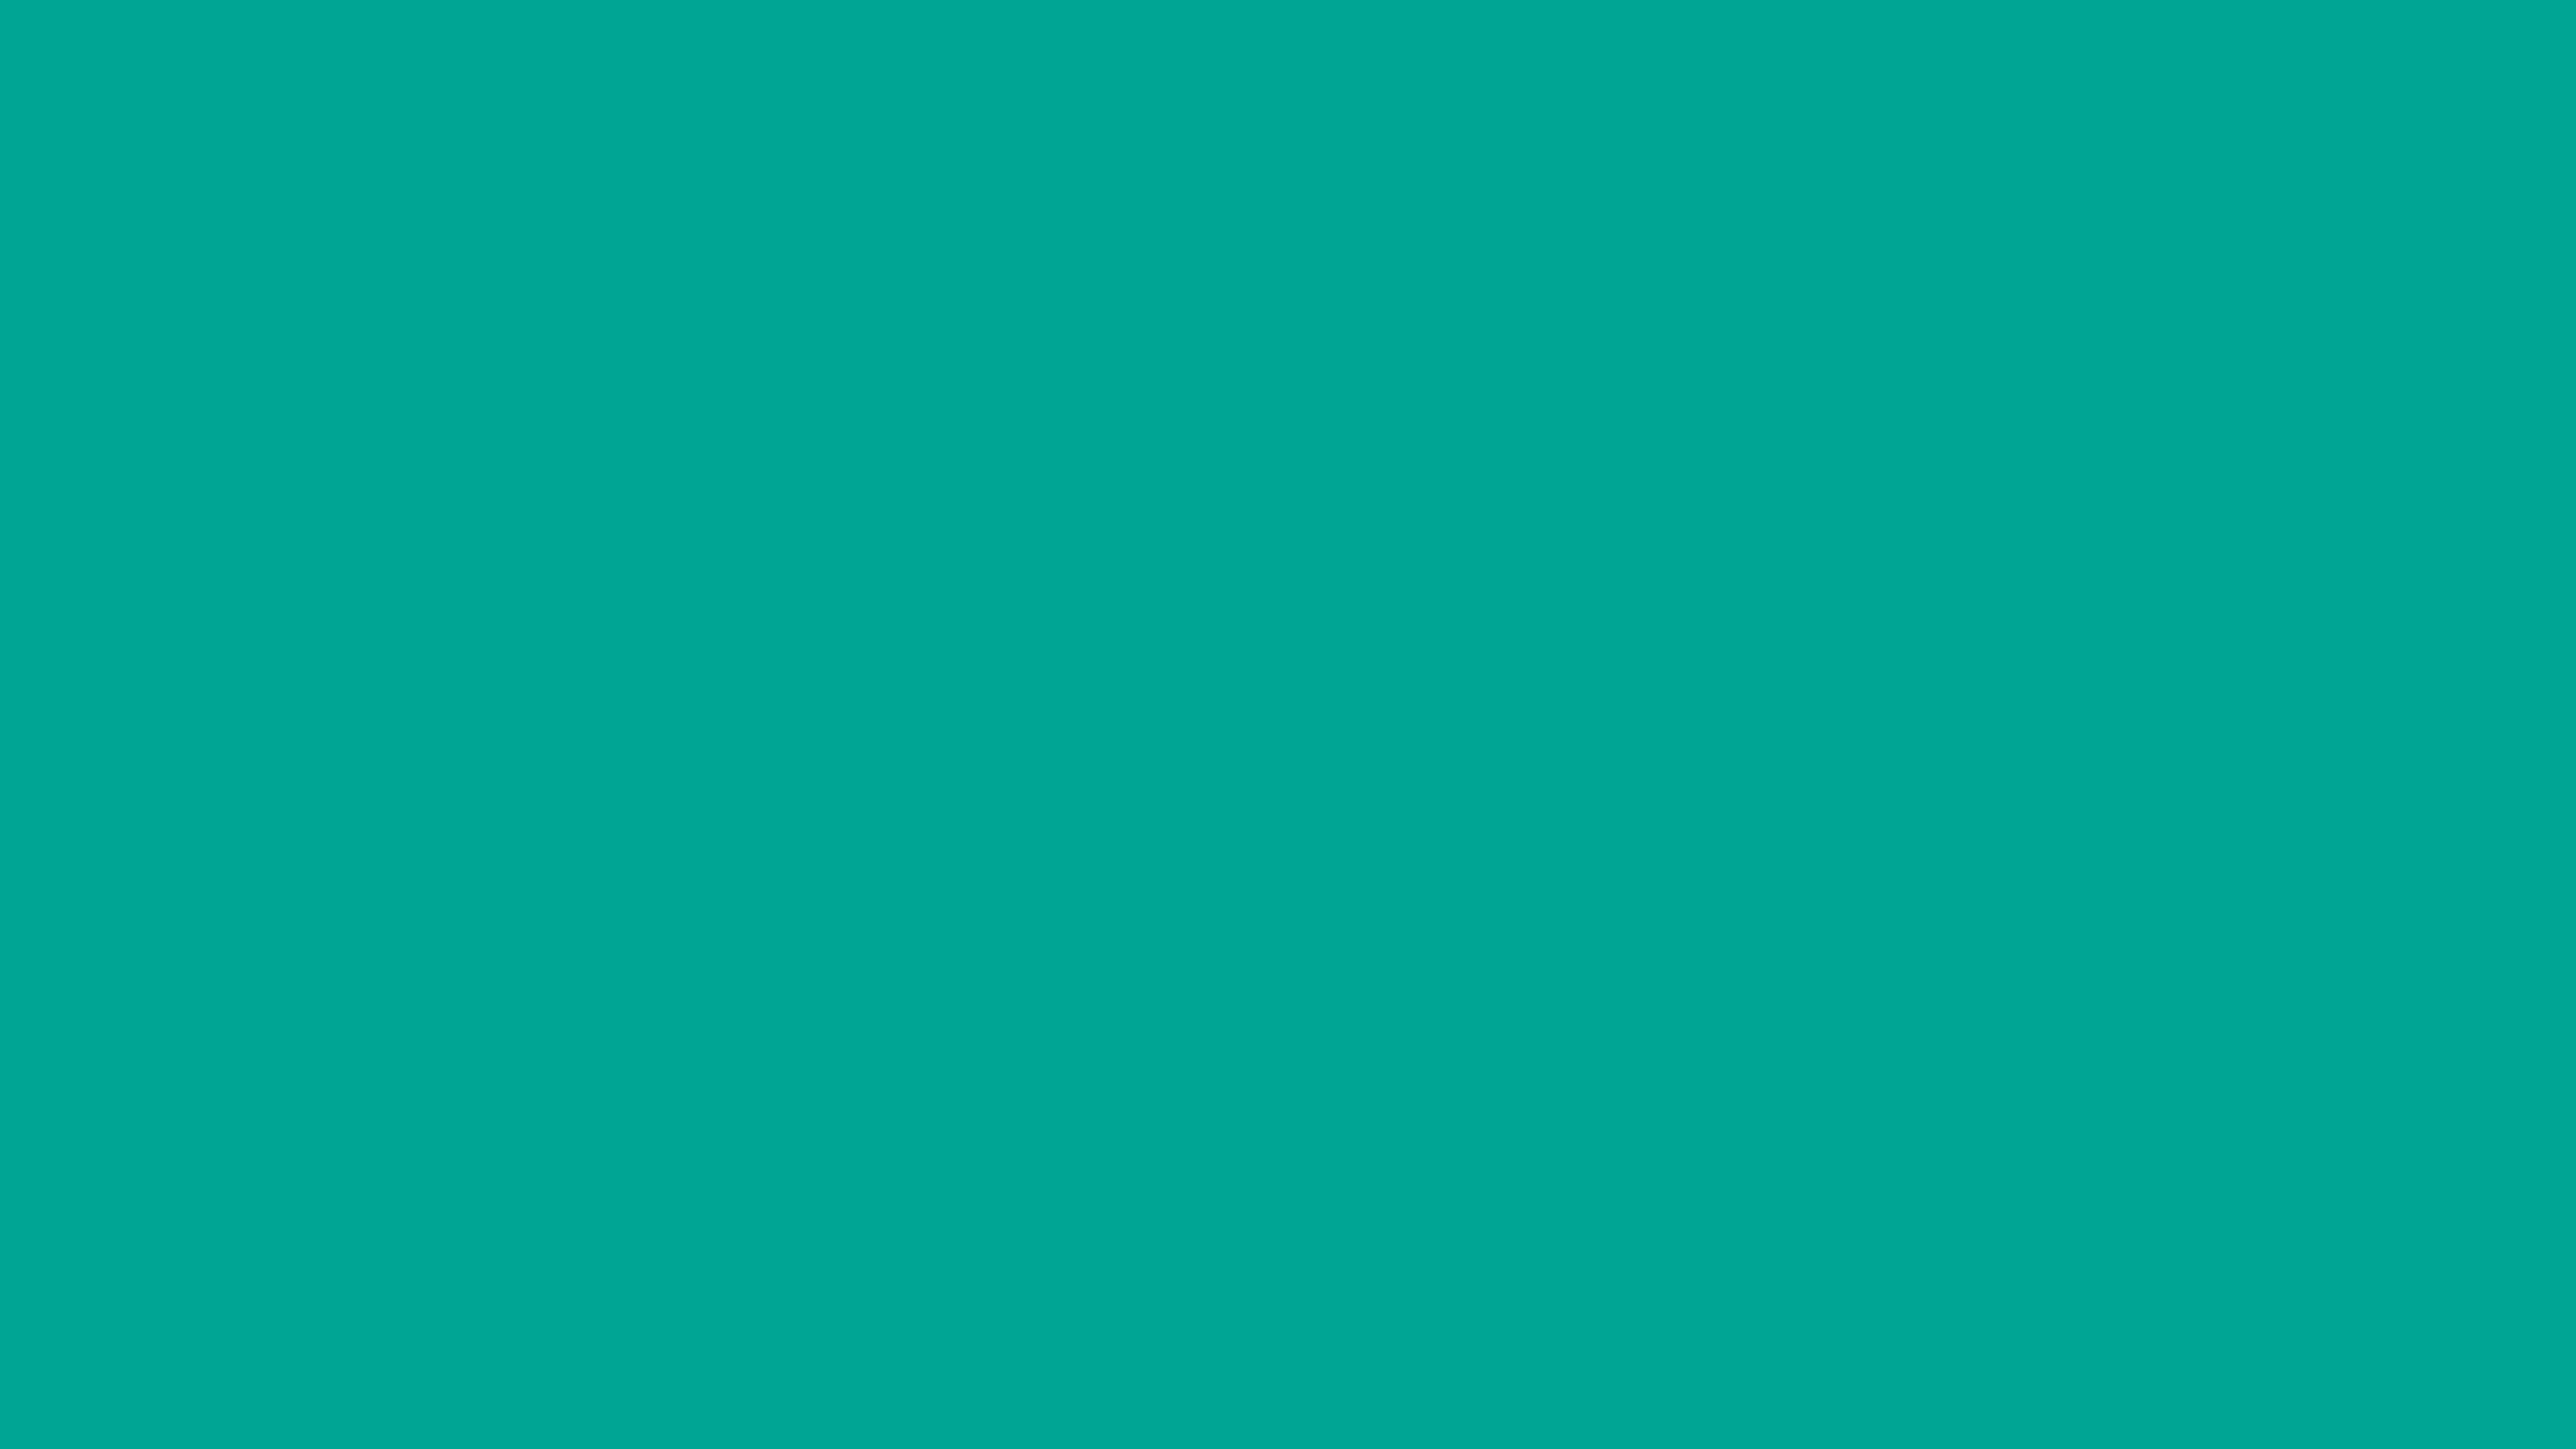 3840x2160 Persian Green Solid Color Background